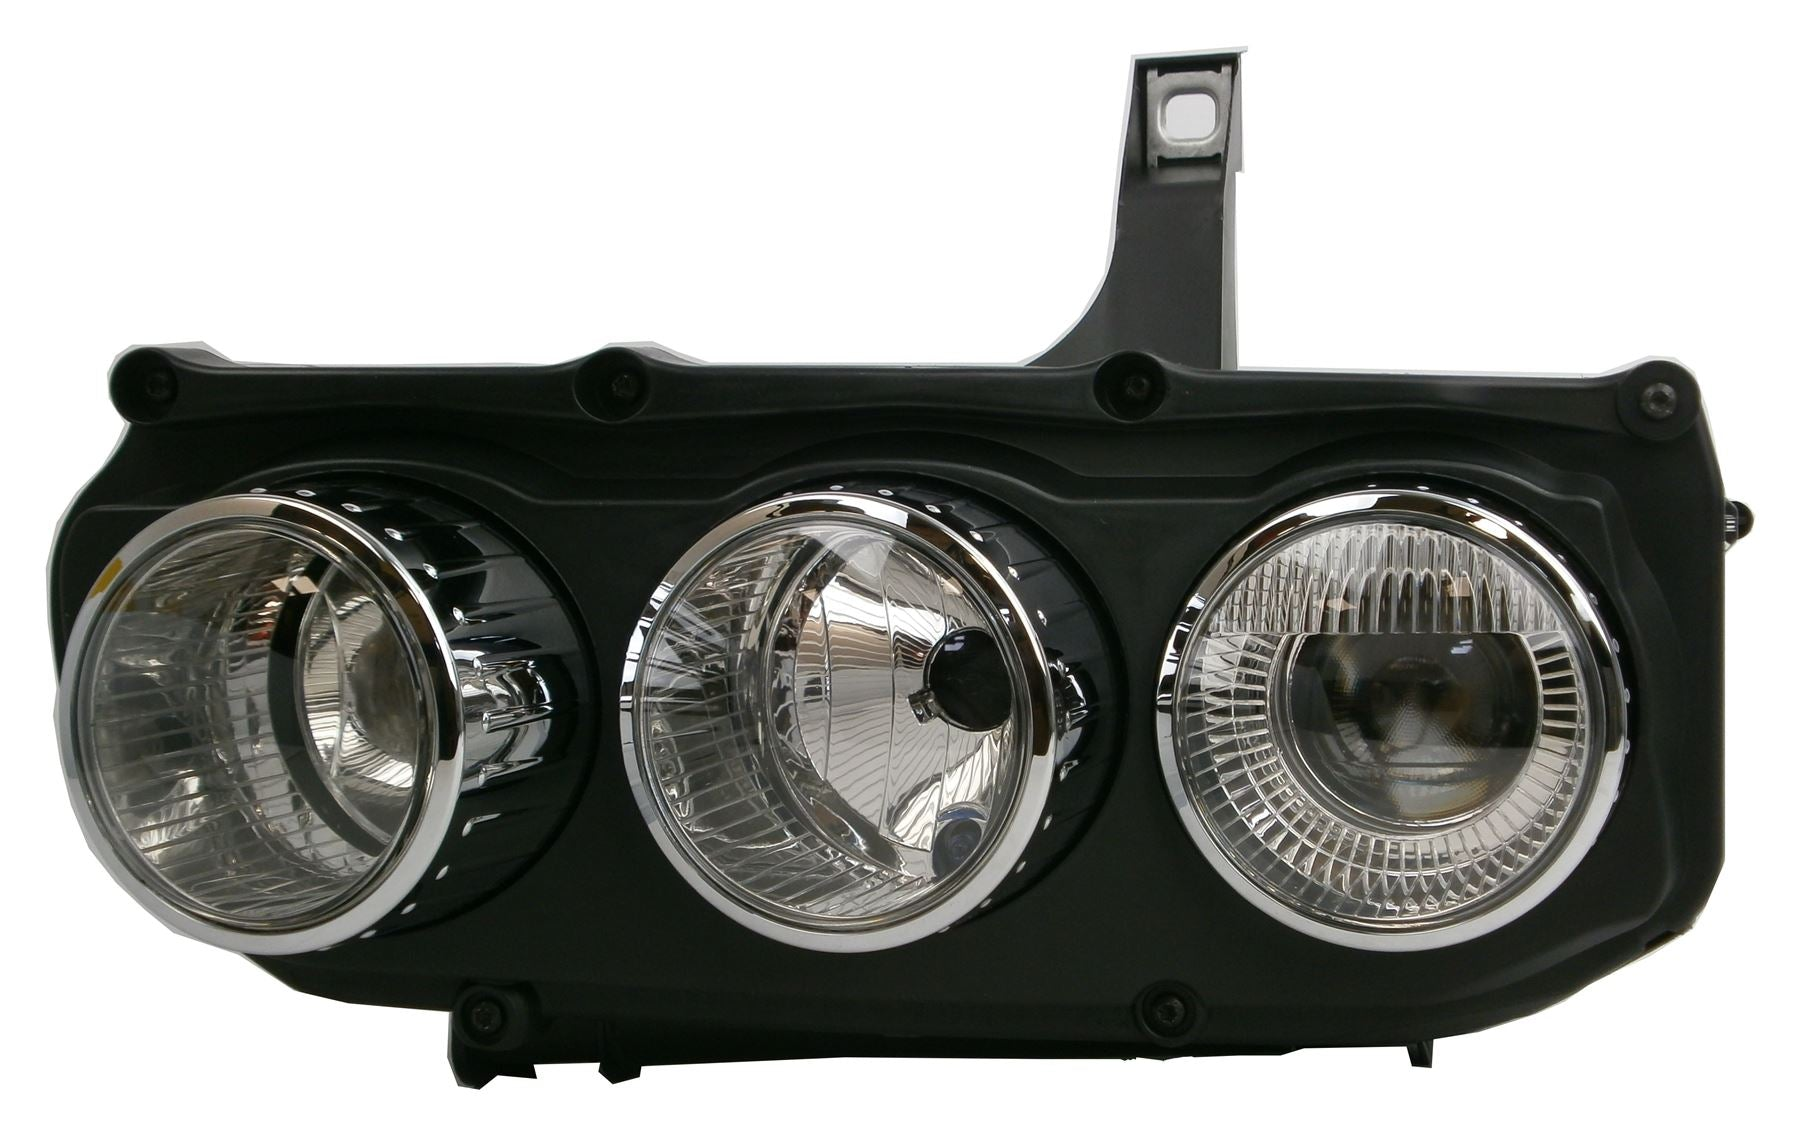 Alfa Brera Coupe 2006-2011 Headlight Headlamp Drivers Side O/S